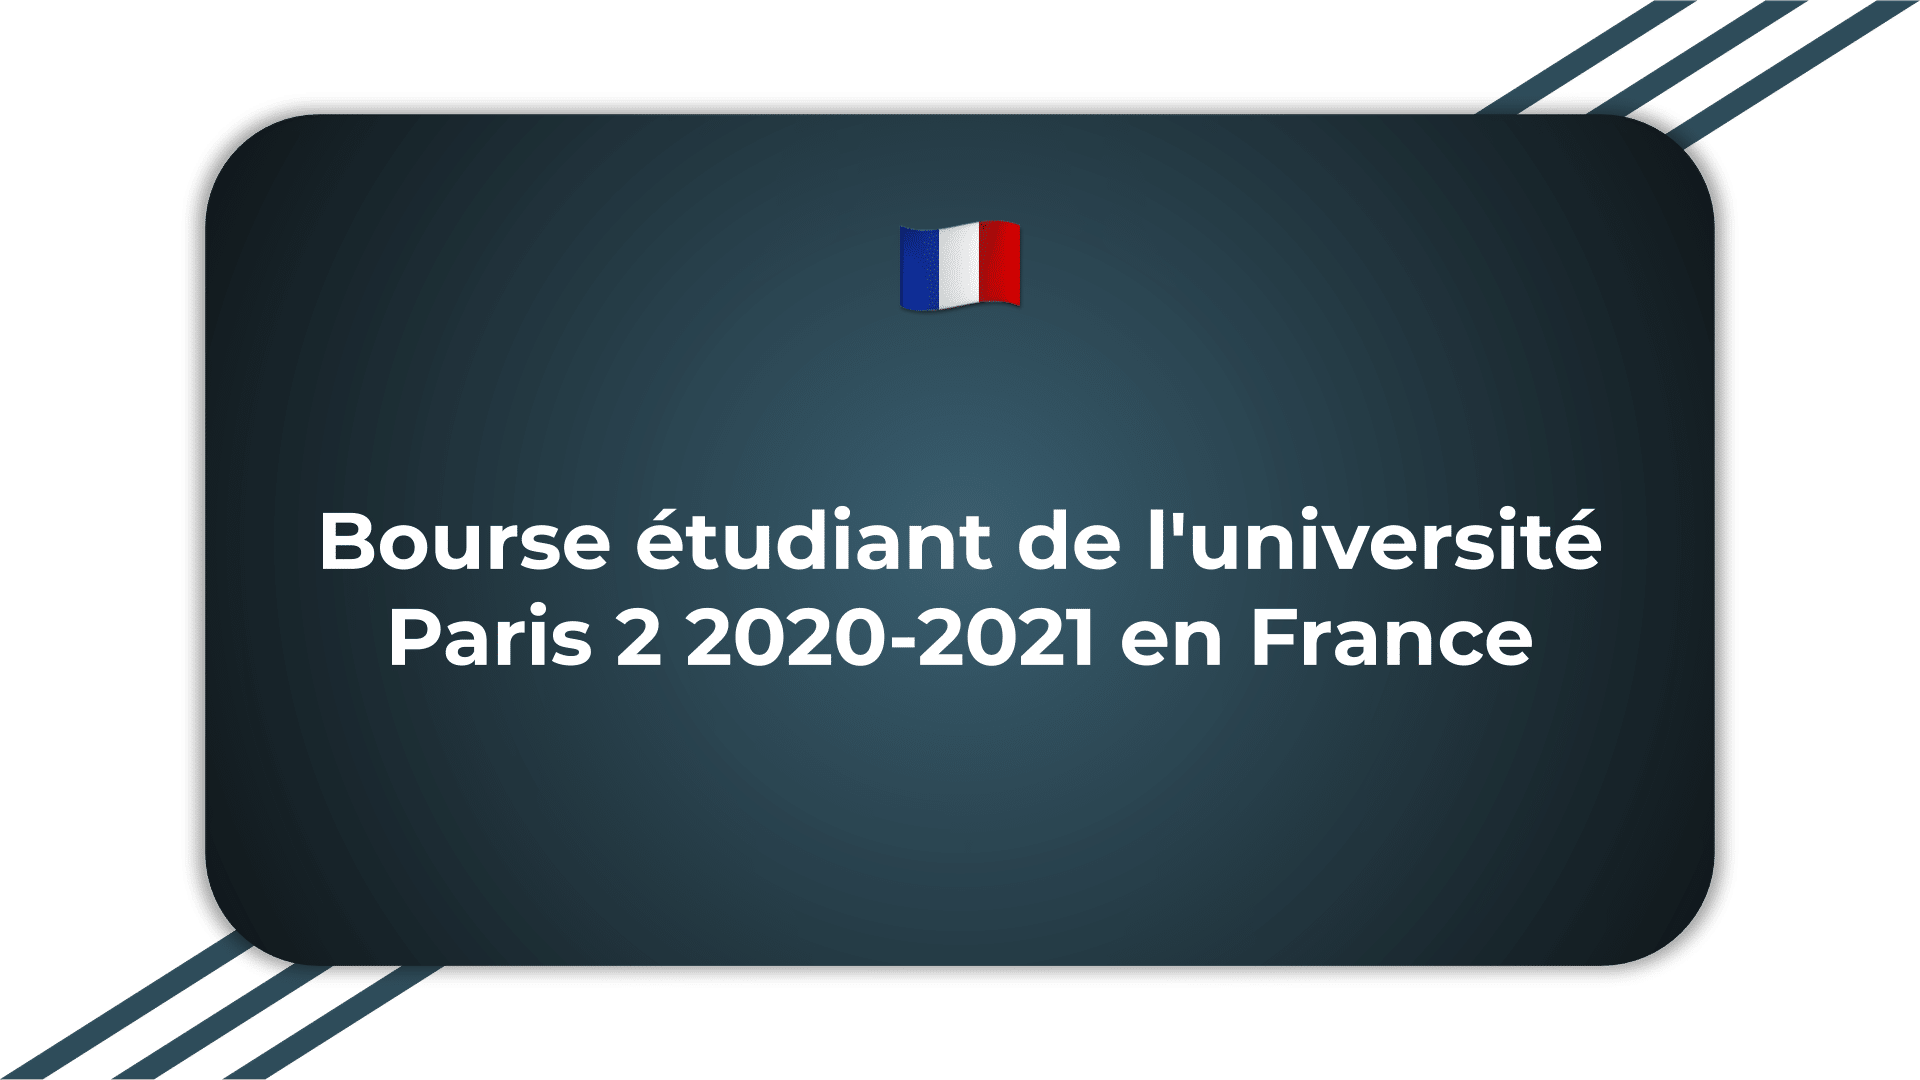 Bourse étudiant de l'université Paris 2